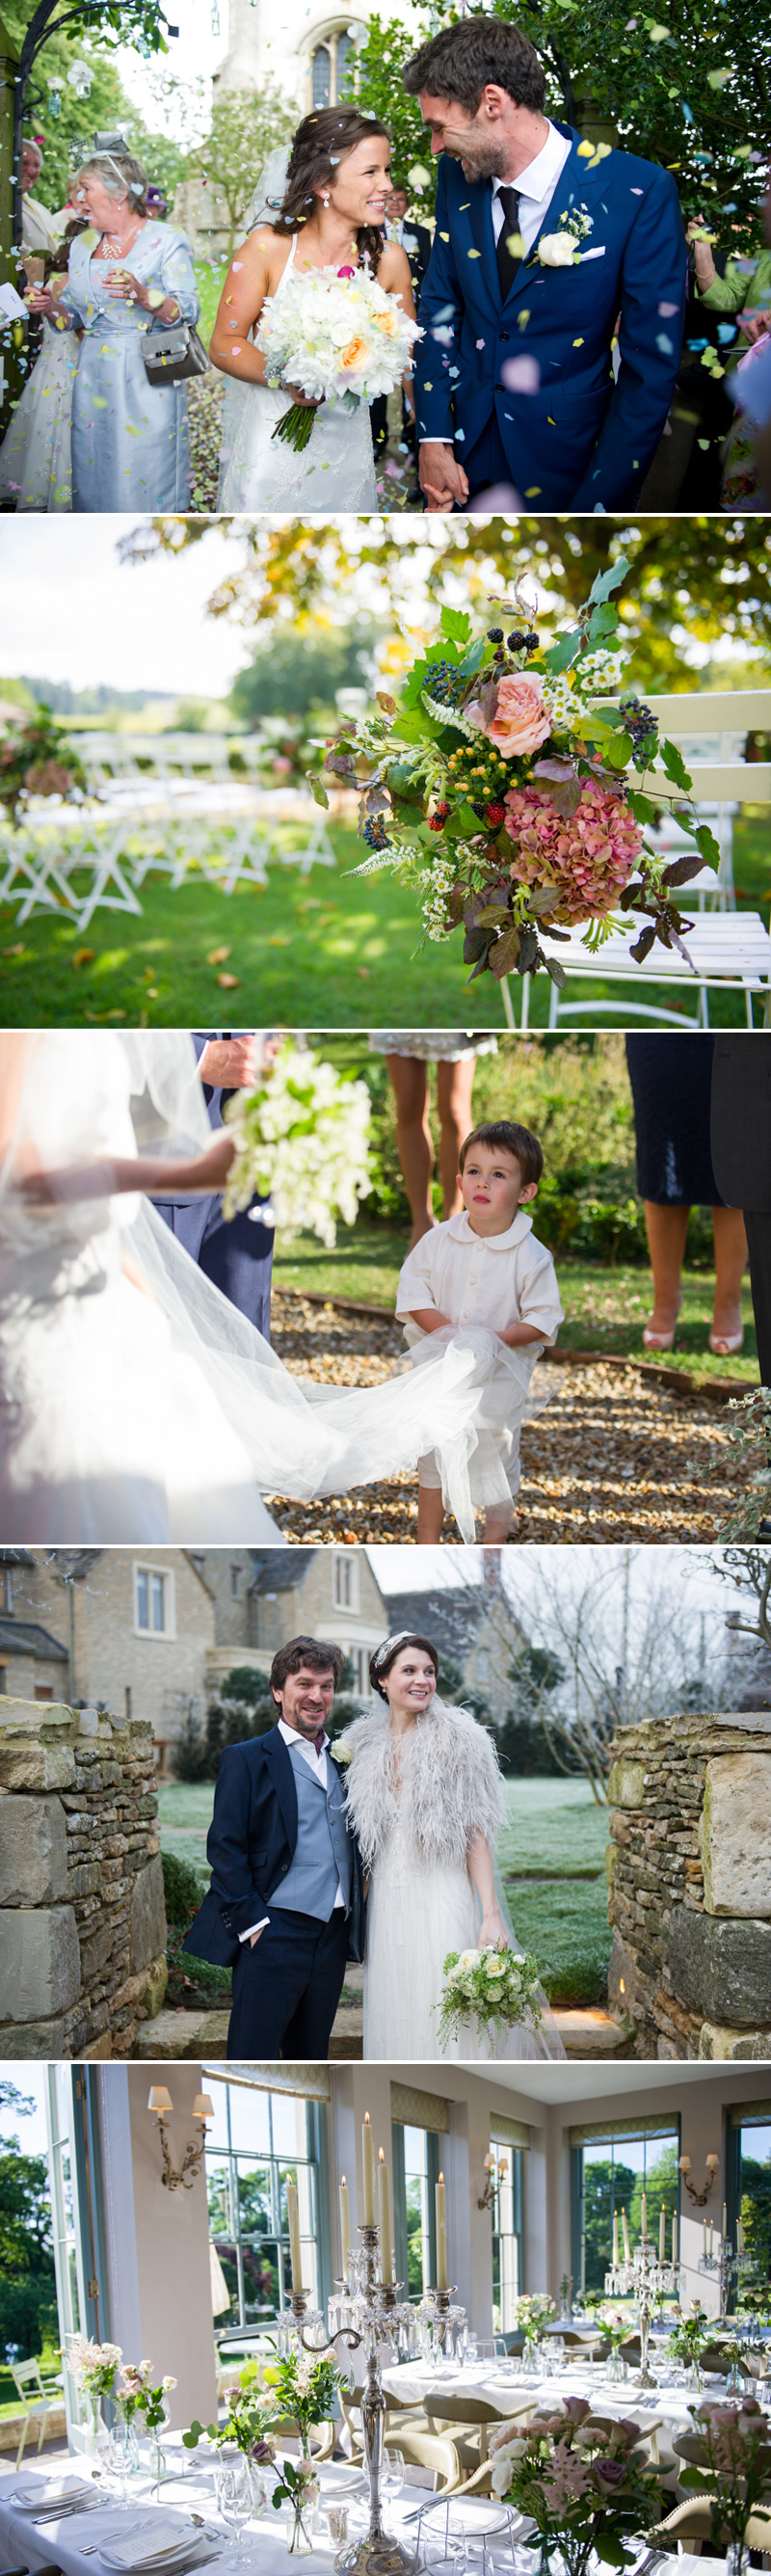 Coco-Wedding-Venues-Especially-Amy-Coco-Blog-Post-layer-2a